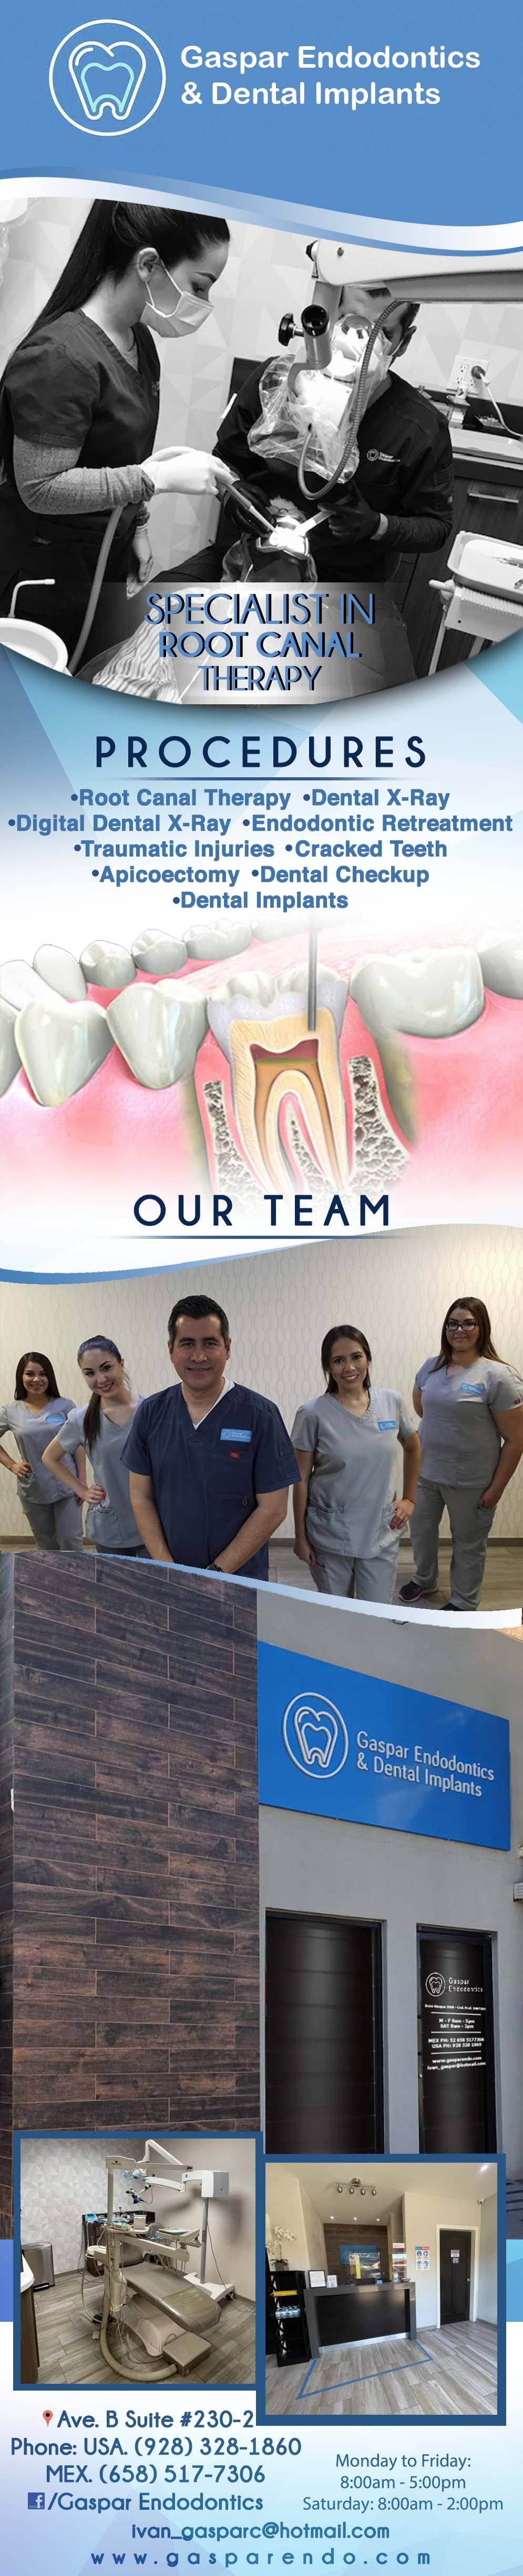 GASPAR ENDODONTICS Ivan Gaspar DDS in Algodones  in Algodones  Dr. Gaspar received his dental degree from University of Baja California School of Dentistry in 1999. He and went on to complete his postgraduate work in endodontics at same University in 2001.Dr. Gaspar Has been in full-time practice as an endodontist since 2001. He currently maintains a full-time clinical practice, Gaspar Endodontics in Los Algodones, limited to endodontics.  Member Mexican Dental Association. endodoncia endodontics  smile treatments Endodontic Specialist 	 Root Canal Therapy Traumatic Injuries Cracked Teeth Fractured Cusp